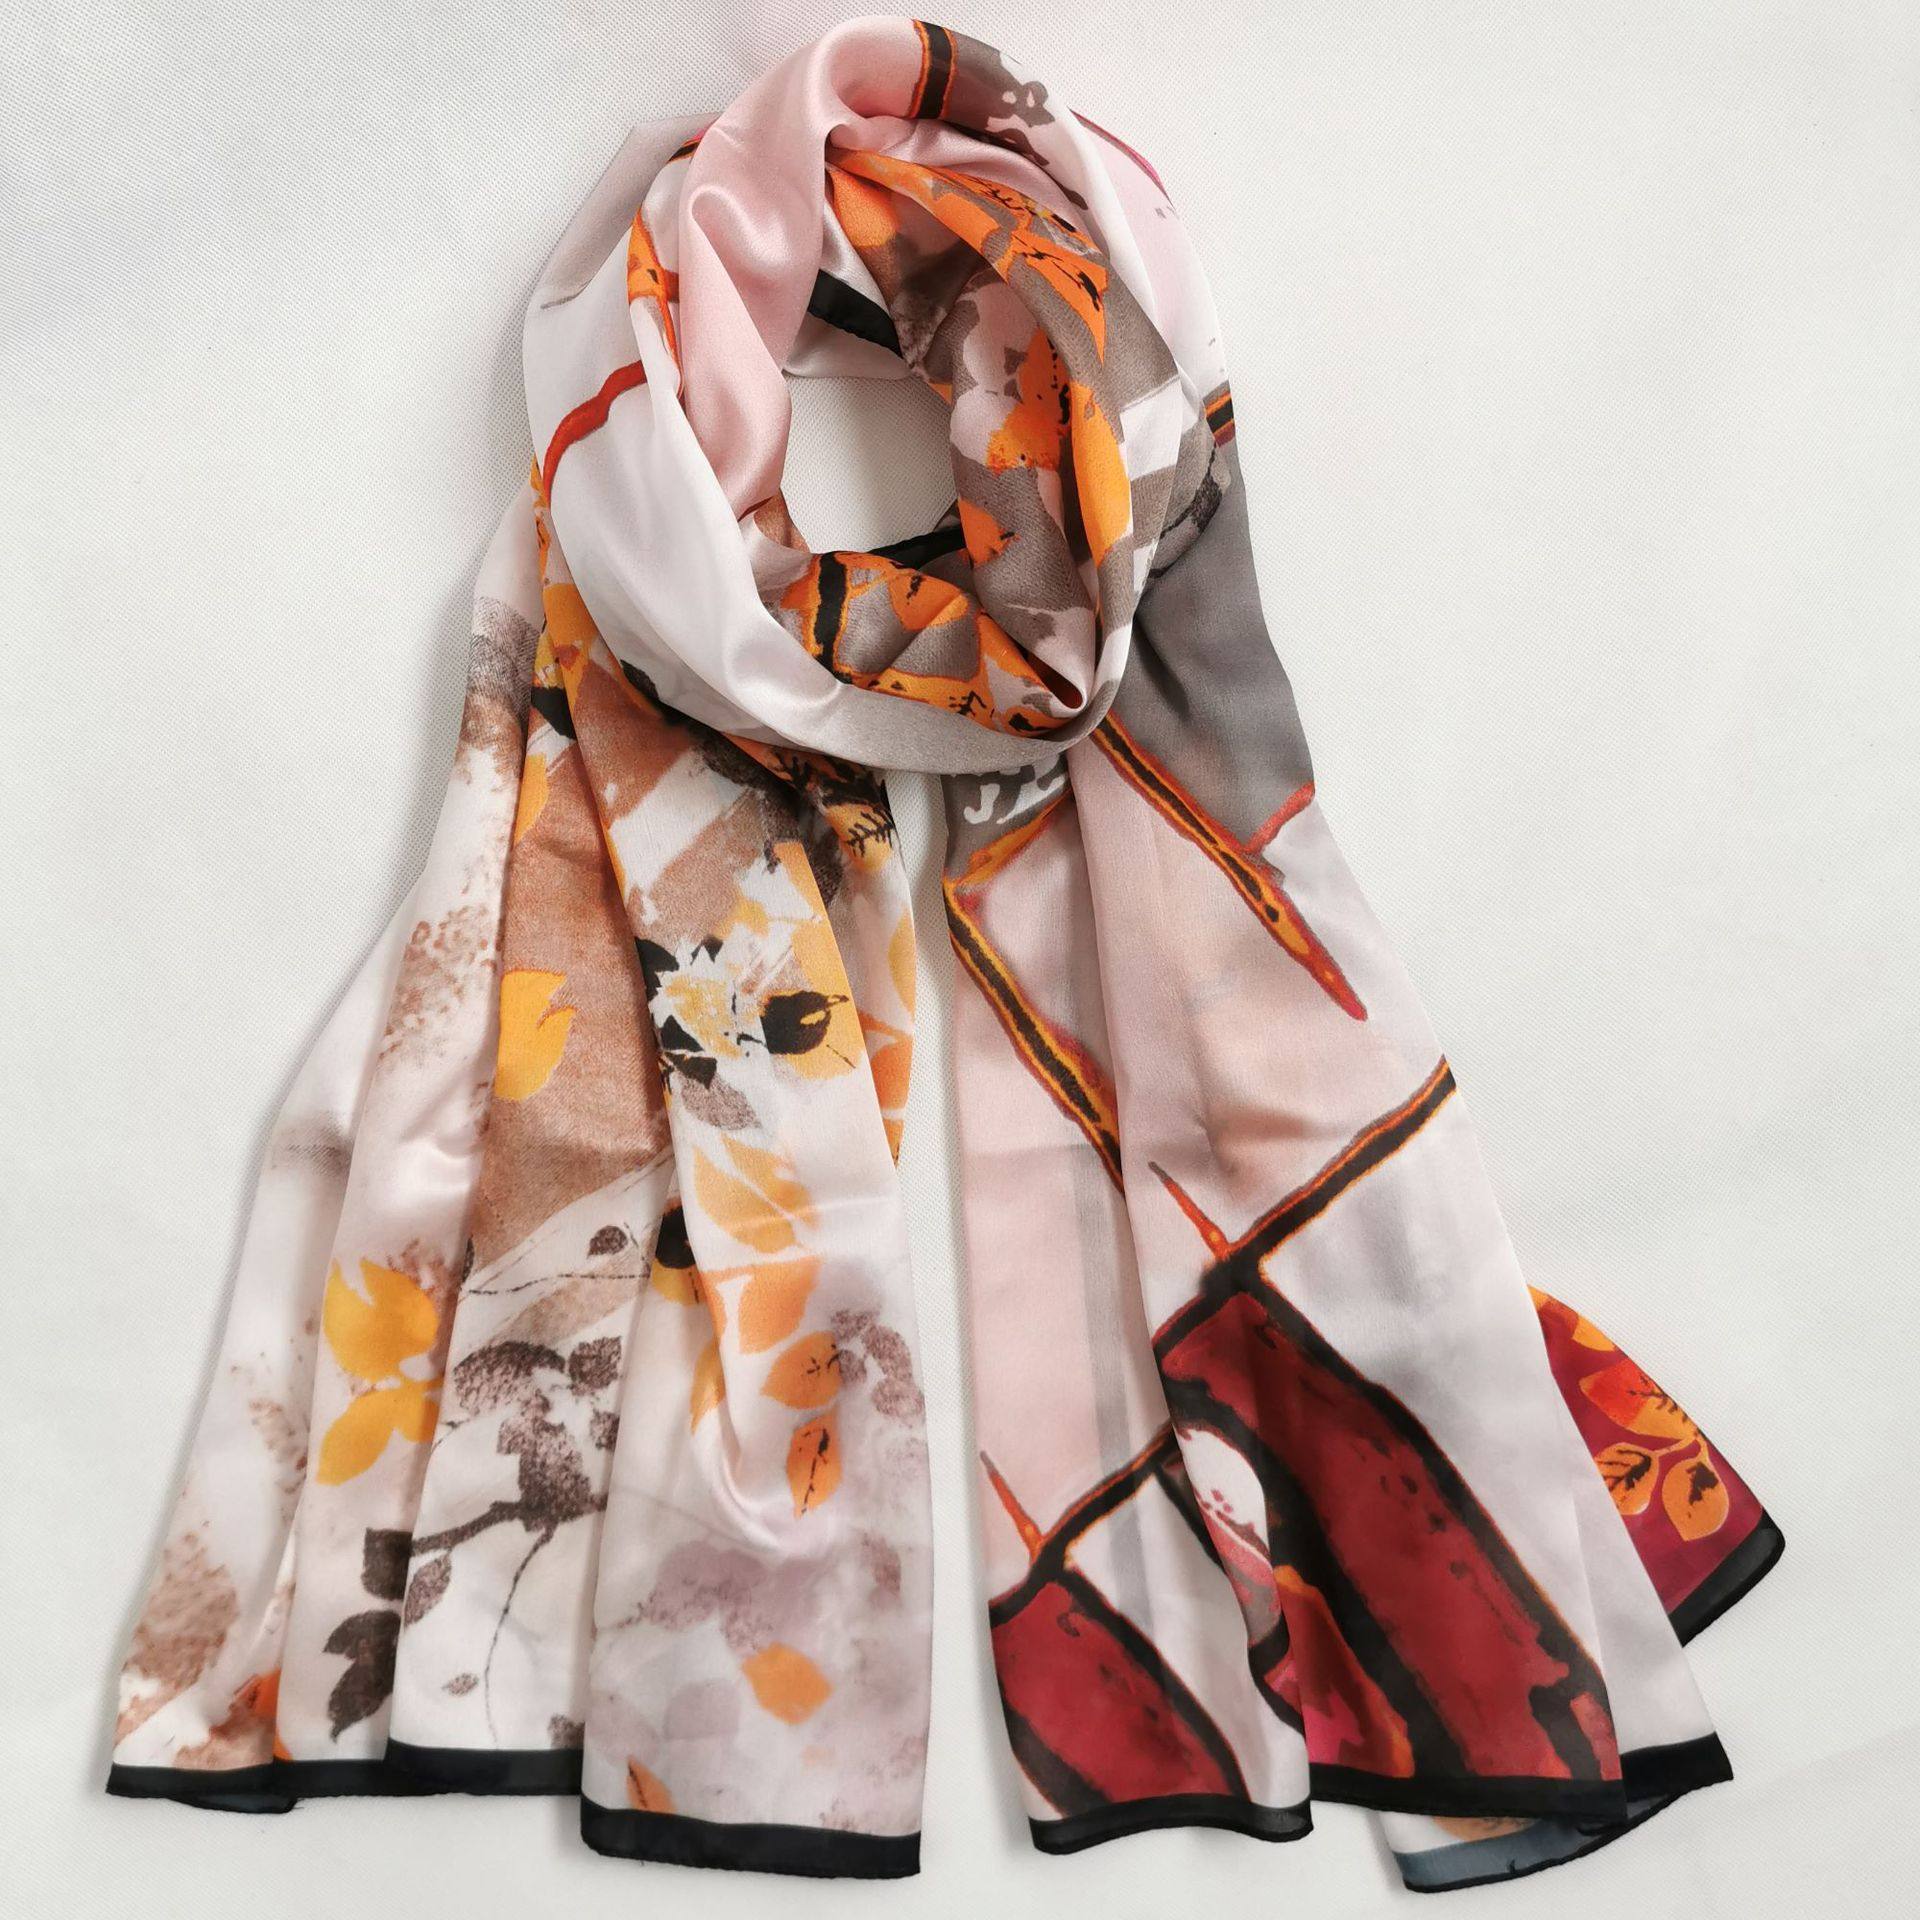 Luxury Spring And Summer Women New Style Fashion Color Matching Print Silk Scarf Lady Popular Headcloth Beach Shawl